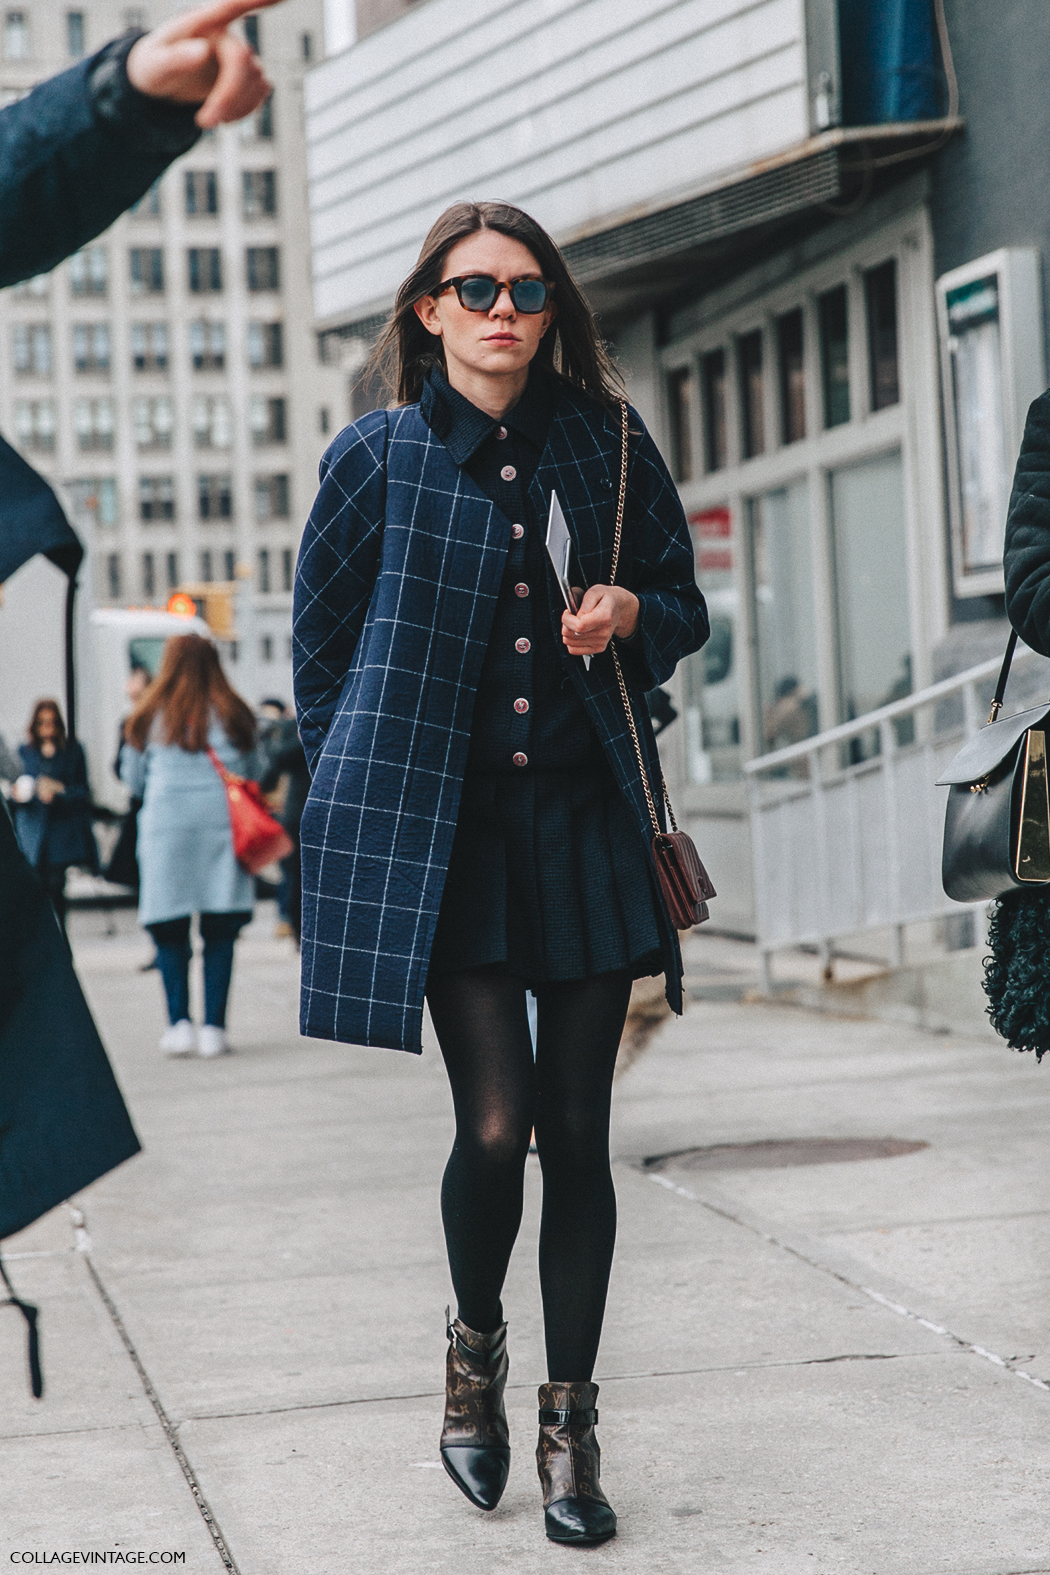 NYFW-New_York_Fashion_Week-Fall_Winter-17-Street_Style-Julia_Gall-Chanel_Jacket-Pleated_Midi_Skirt-Louis_Vuitton_Boots-1